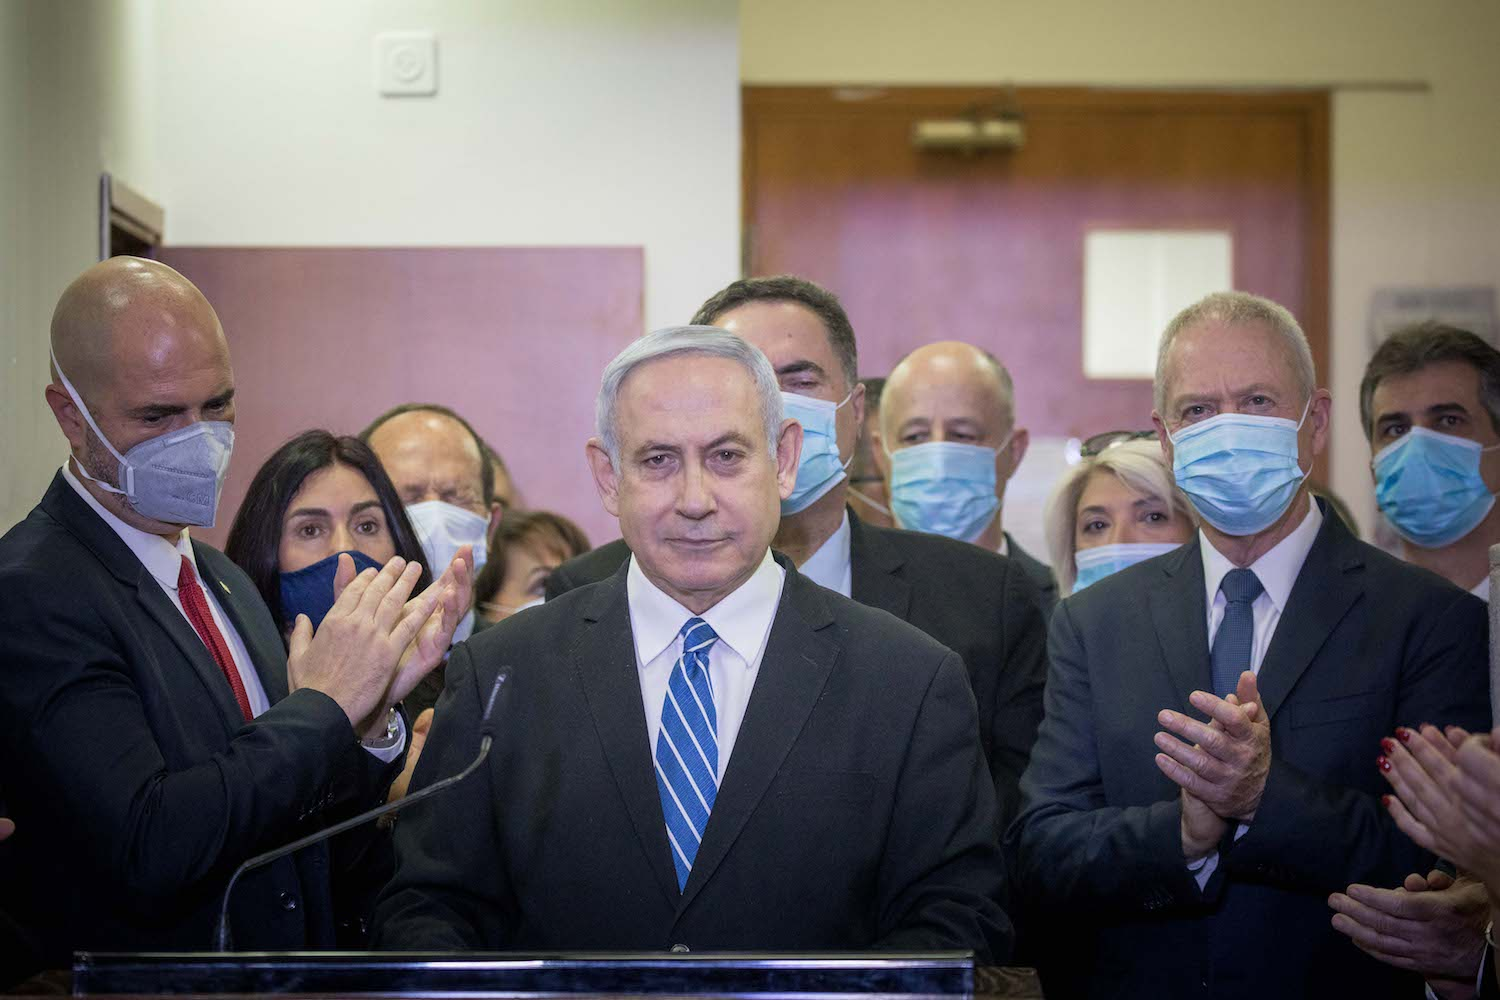 Israeli Prime Minister Benjamin Netanyahu is surrounded by Likud lawmakers as he gives a press statement ahead of the start of his trial at the District Court in Jerusalem, May 24, 2020. (Yonatan Sindel/Flash90)